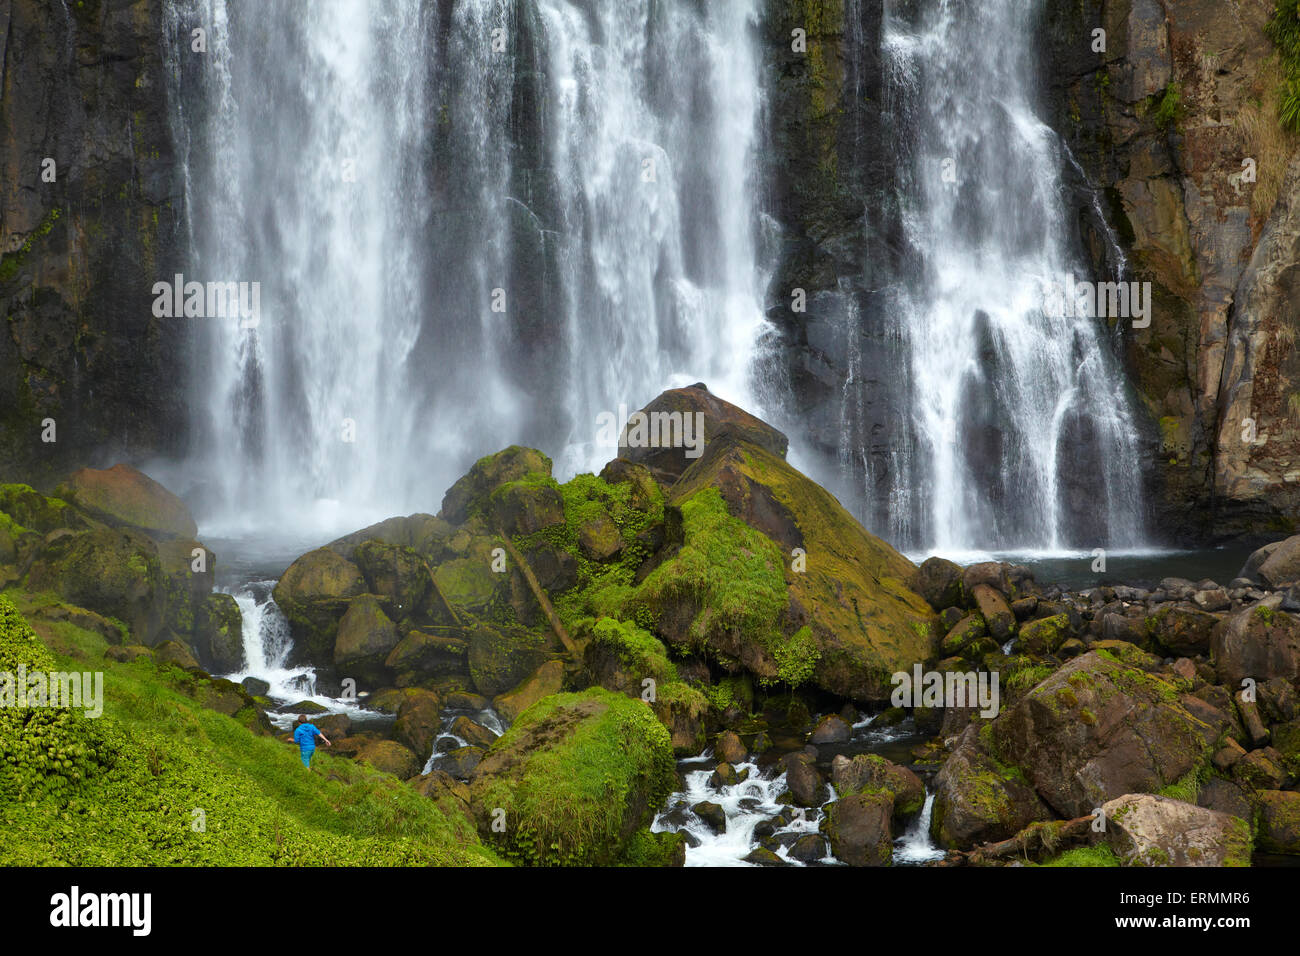 Marokopa Falls, District de Waitomo, Waikato, Nouvelle-Zélande, île du Nord Photo Stock